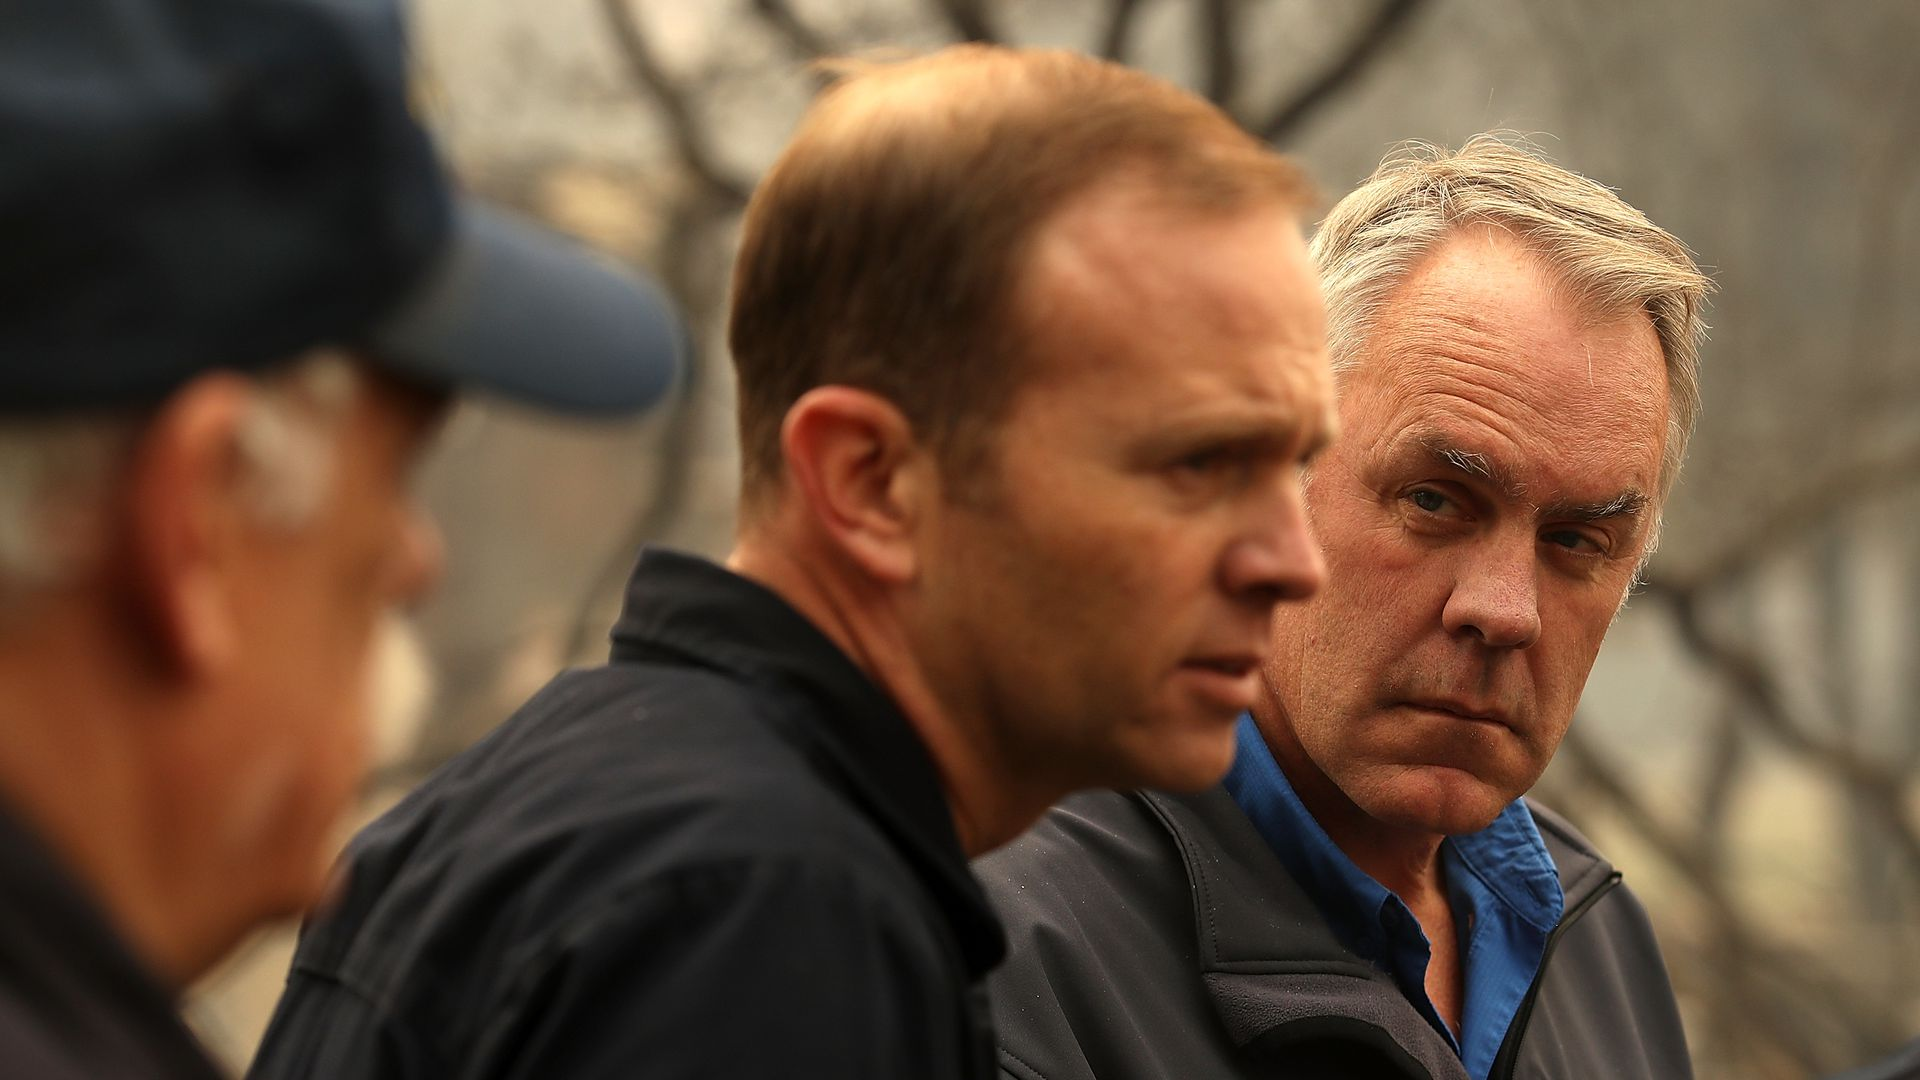 Ryan Zinke and two other men talking.